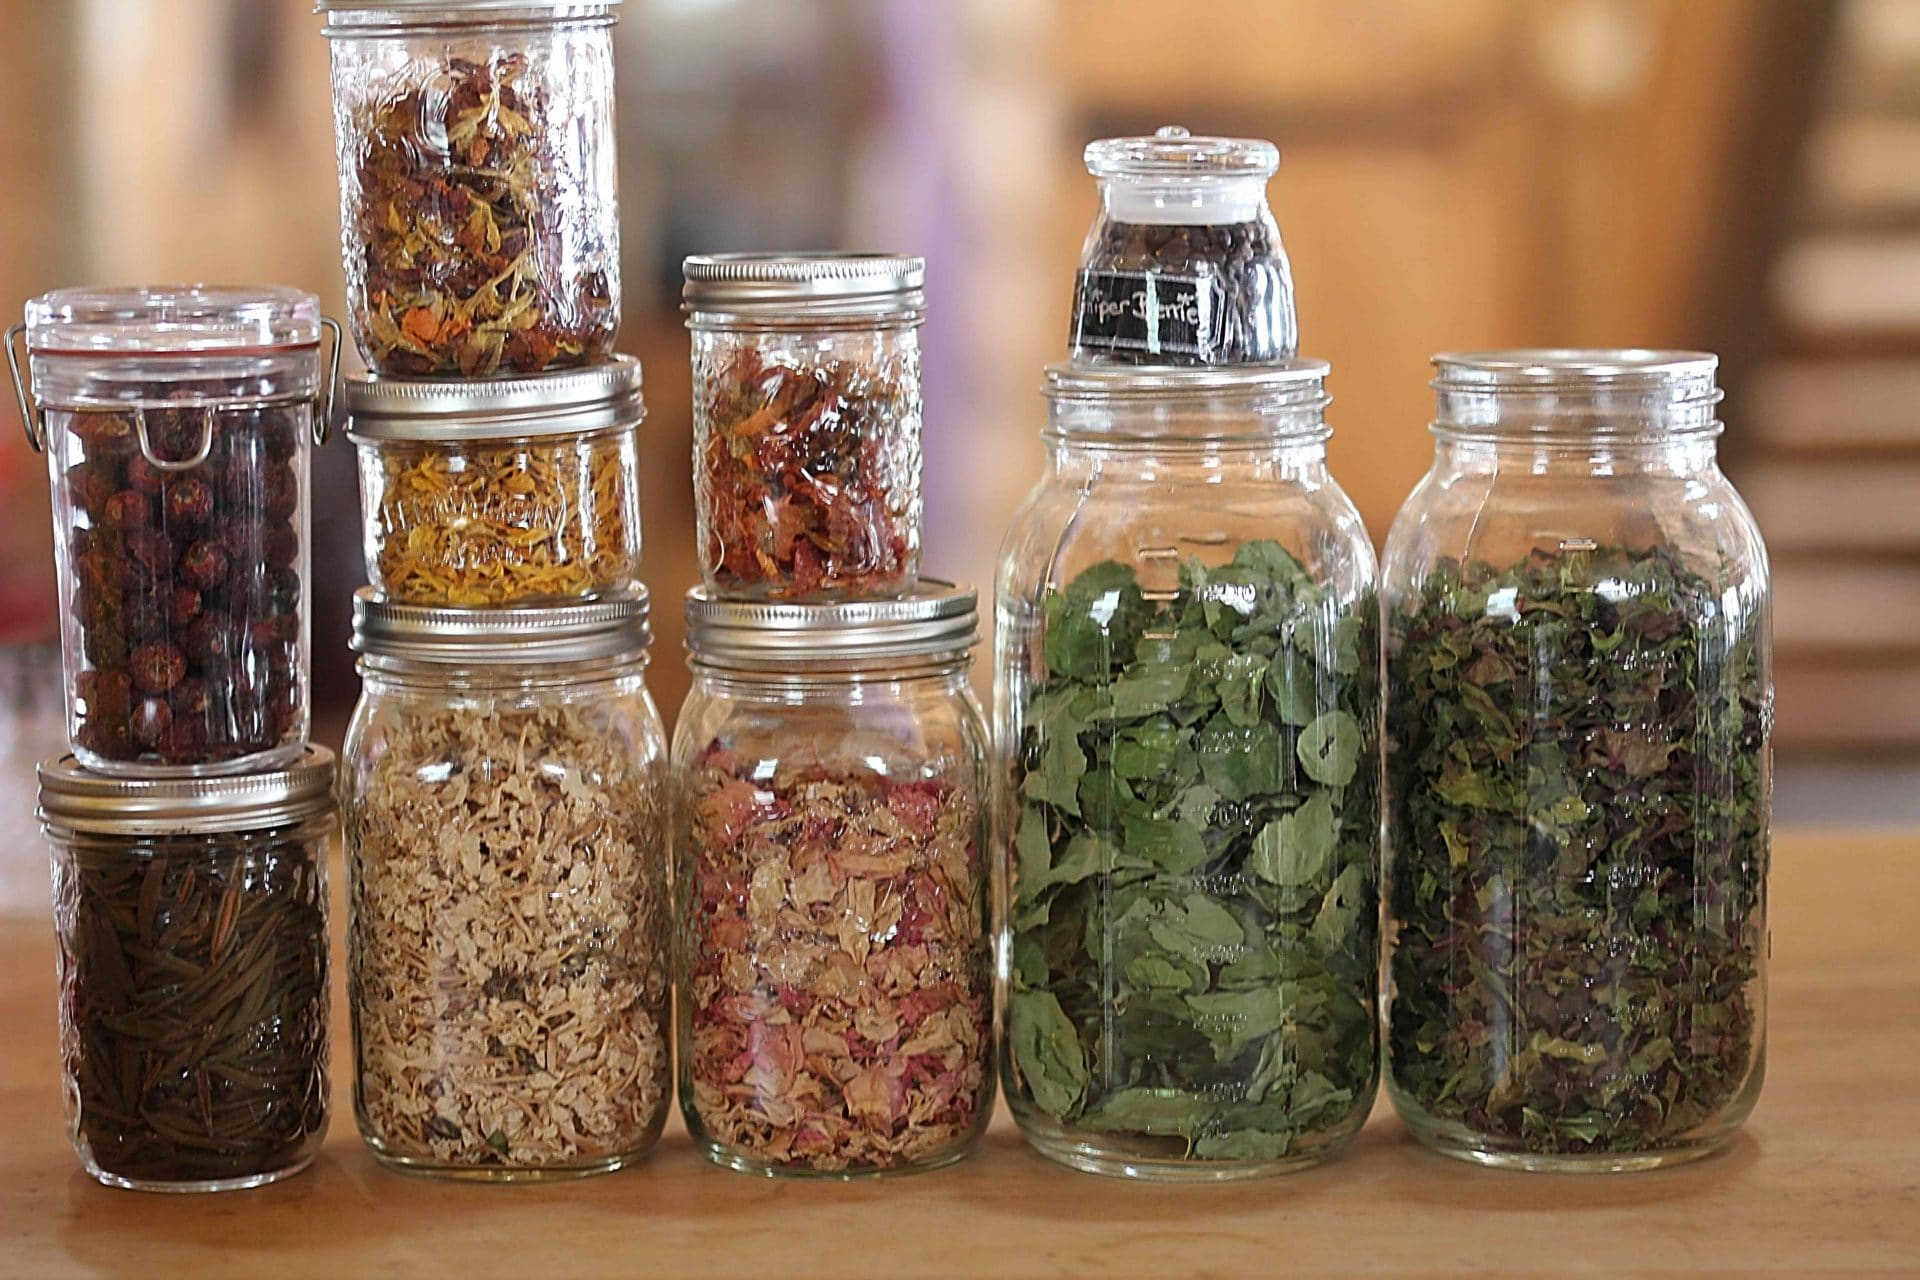 The Home-grown Herb Cabinet